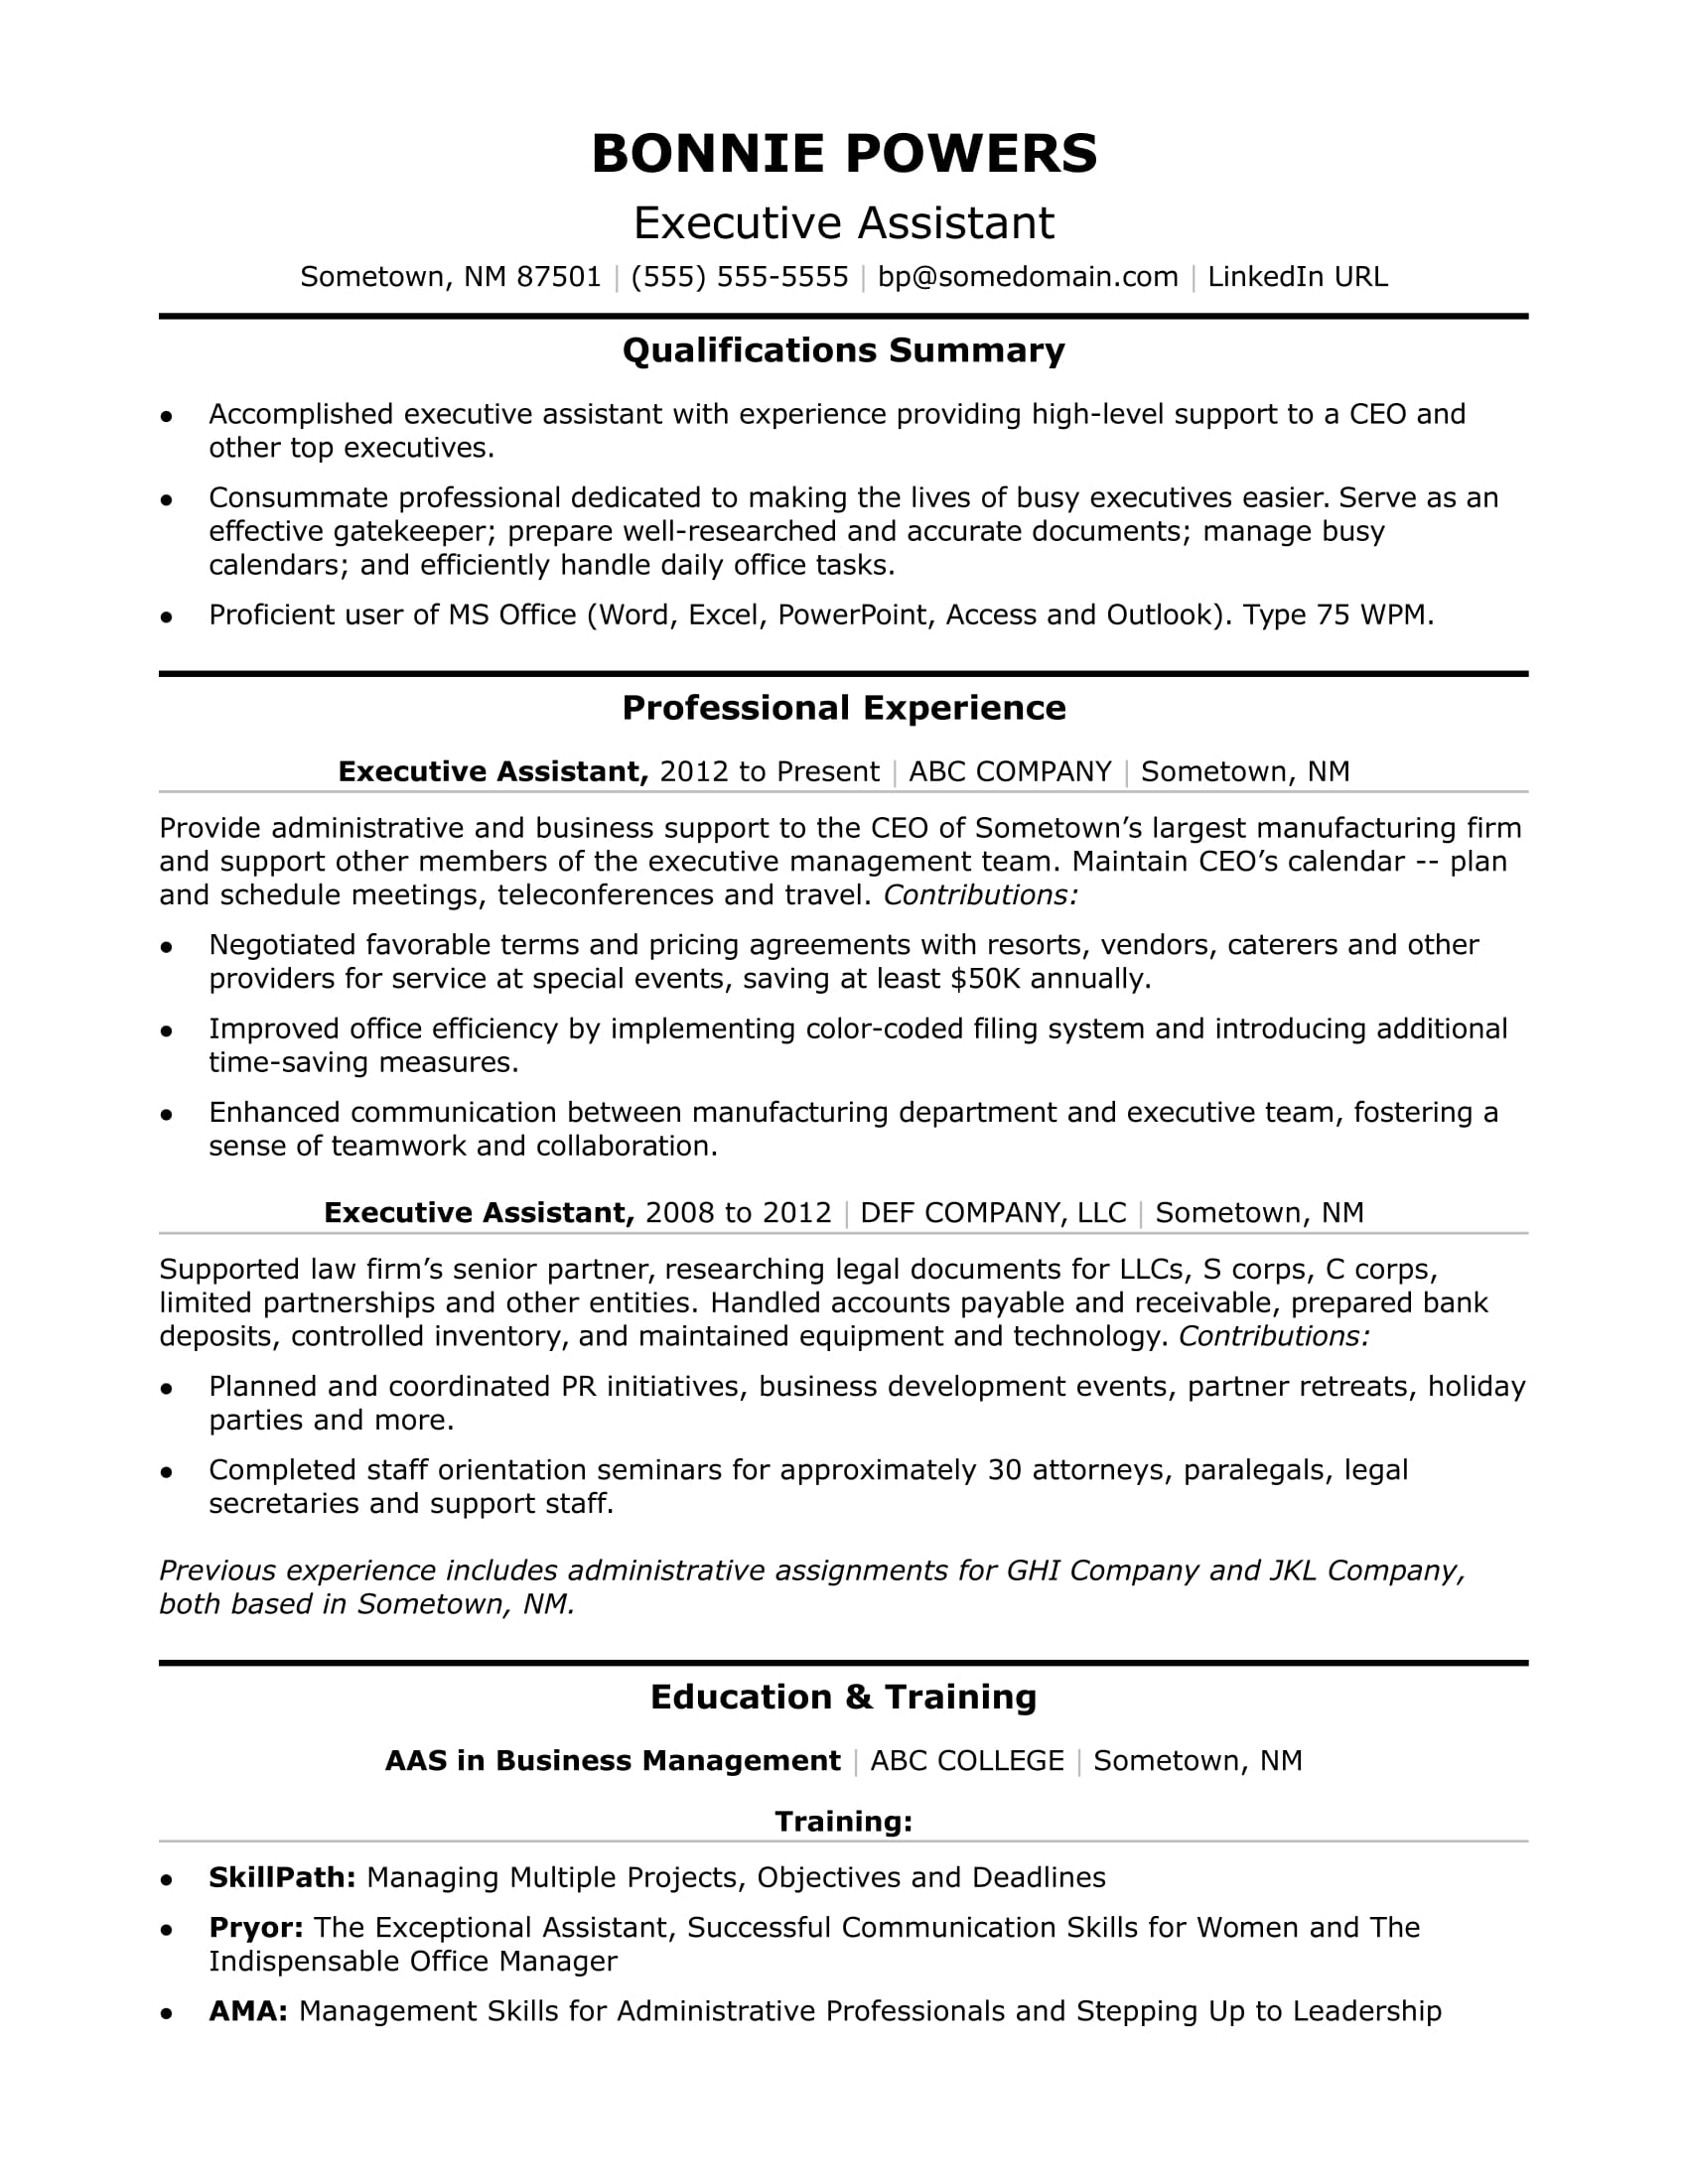 executive administrative assistant resume sample monster director level examples crew Resume Director Level Resume Examples